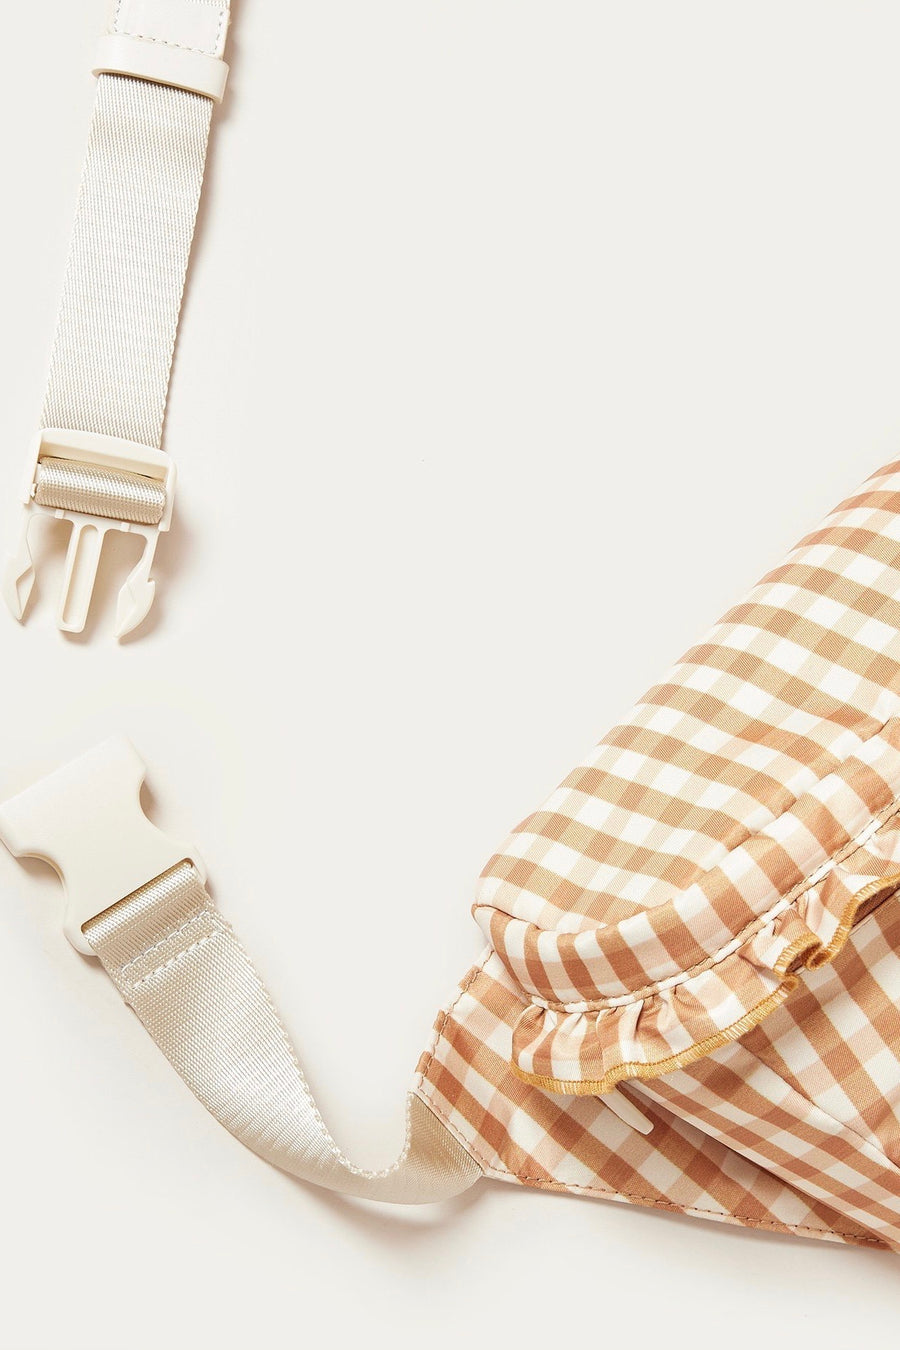 Shiloh Commuter Pack - Amber Gingham